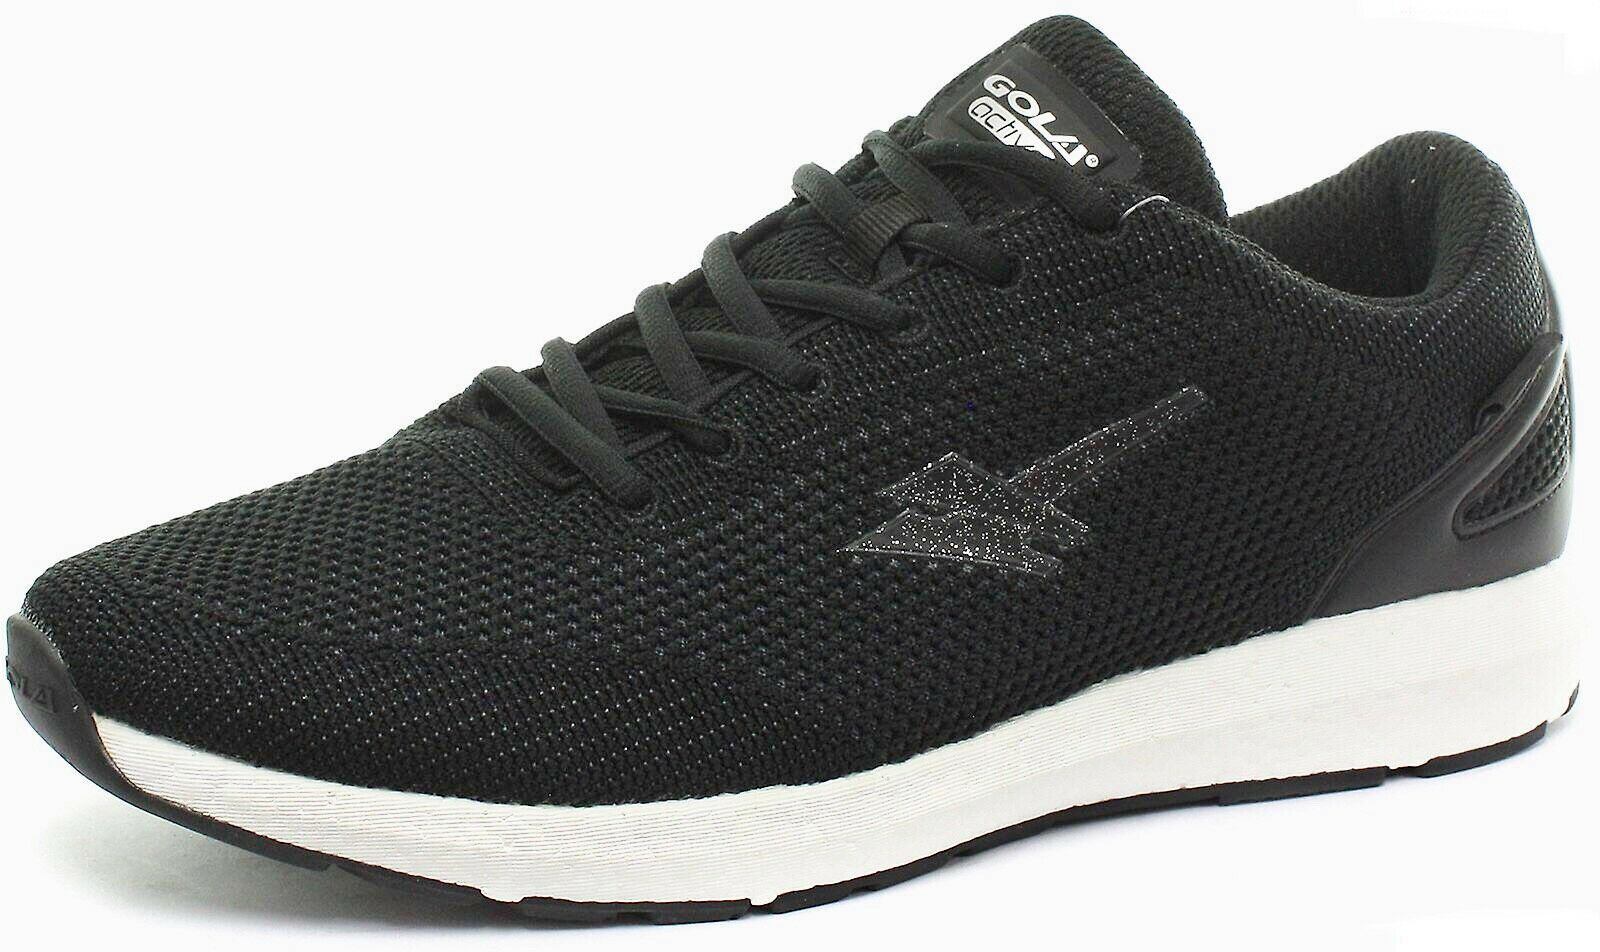 Gola X-Pand Swift Negro Active Unisex Correr Trail Zapatos Resistente al Agua UK12